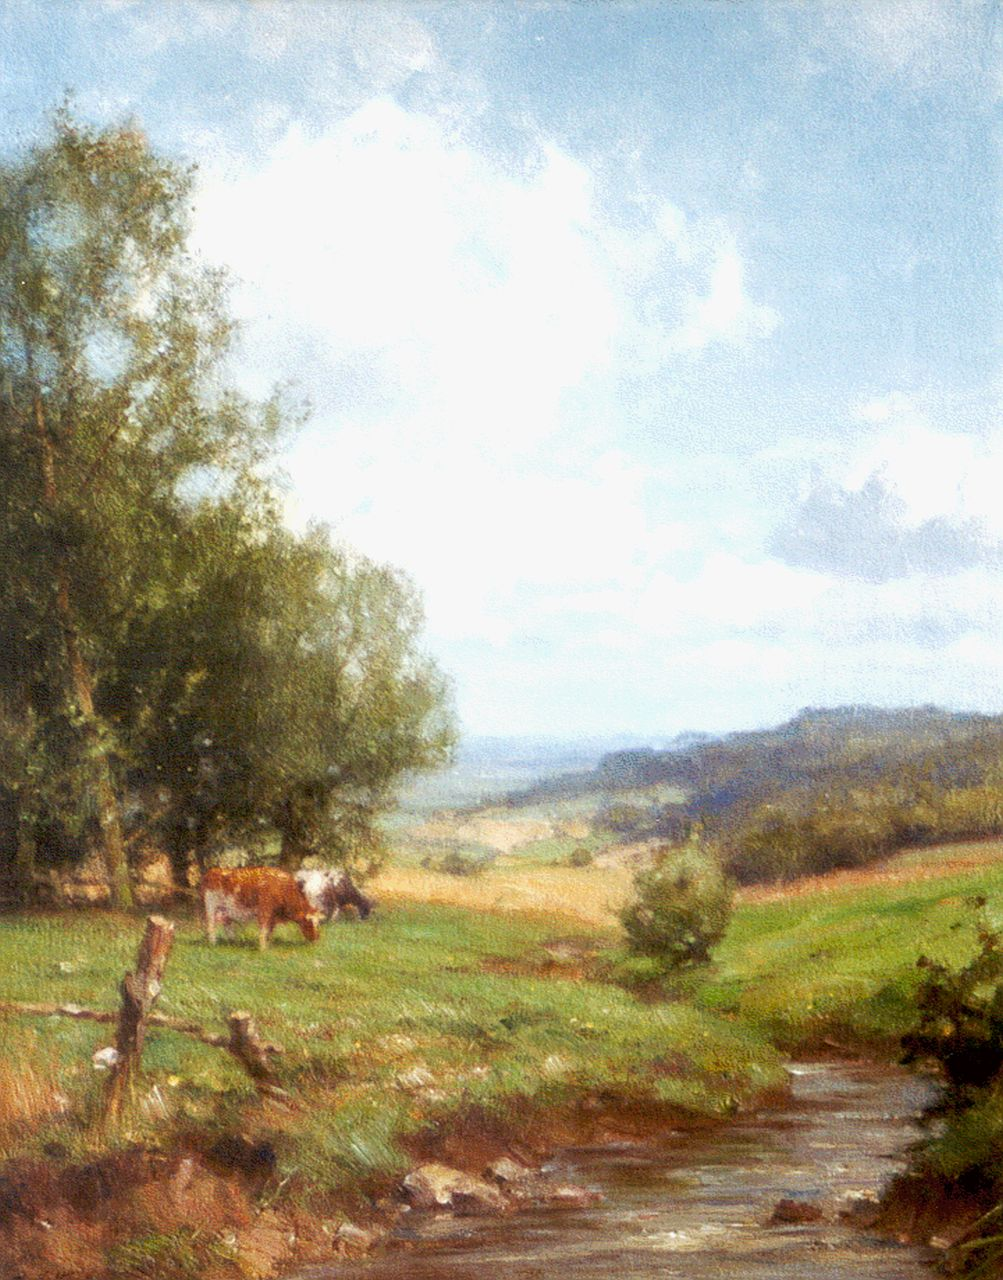 Holtrup J.  | Jan Holtrup, A panoramic view, Epen Zuid-Limburg, oil on canvas 49.8 x 39.8 cm, signed l.l.